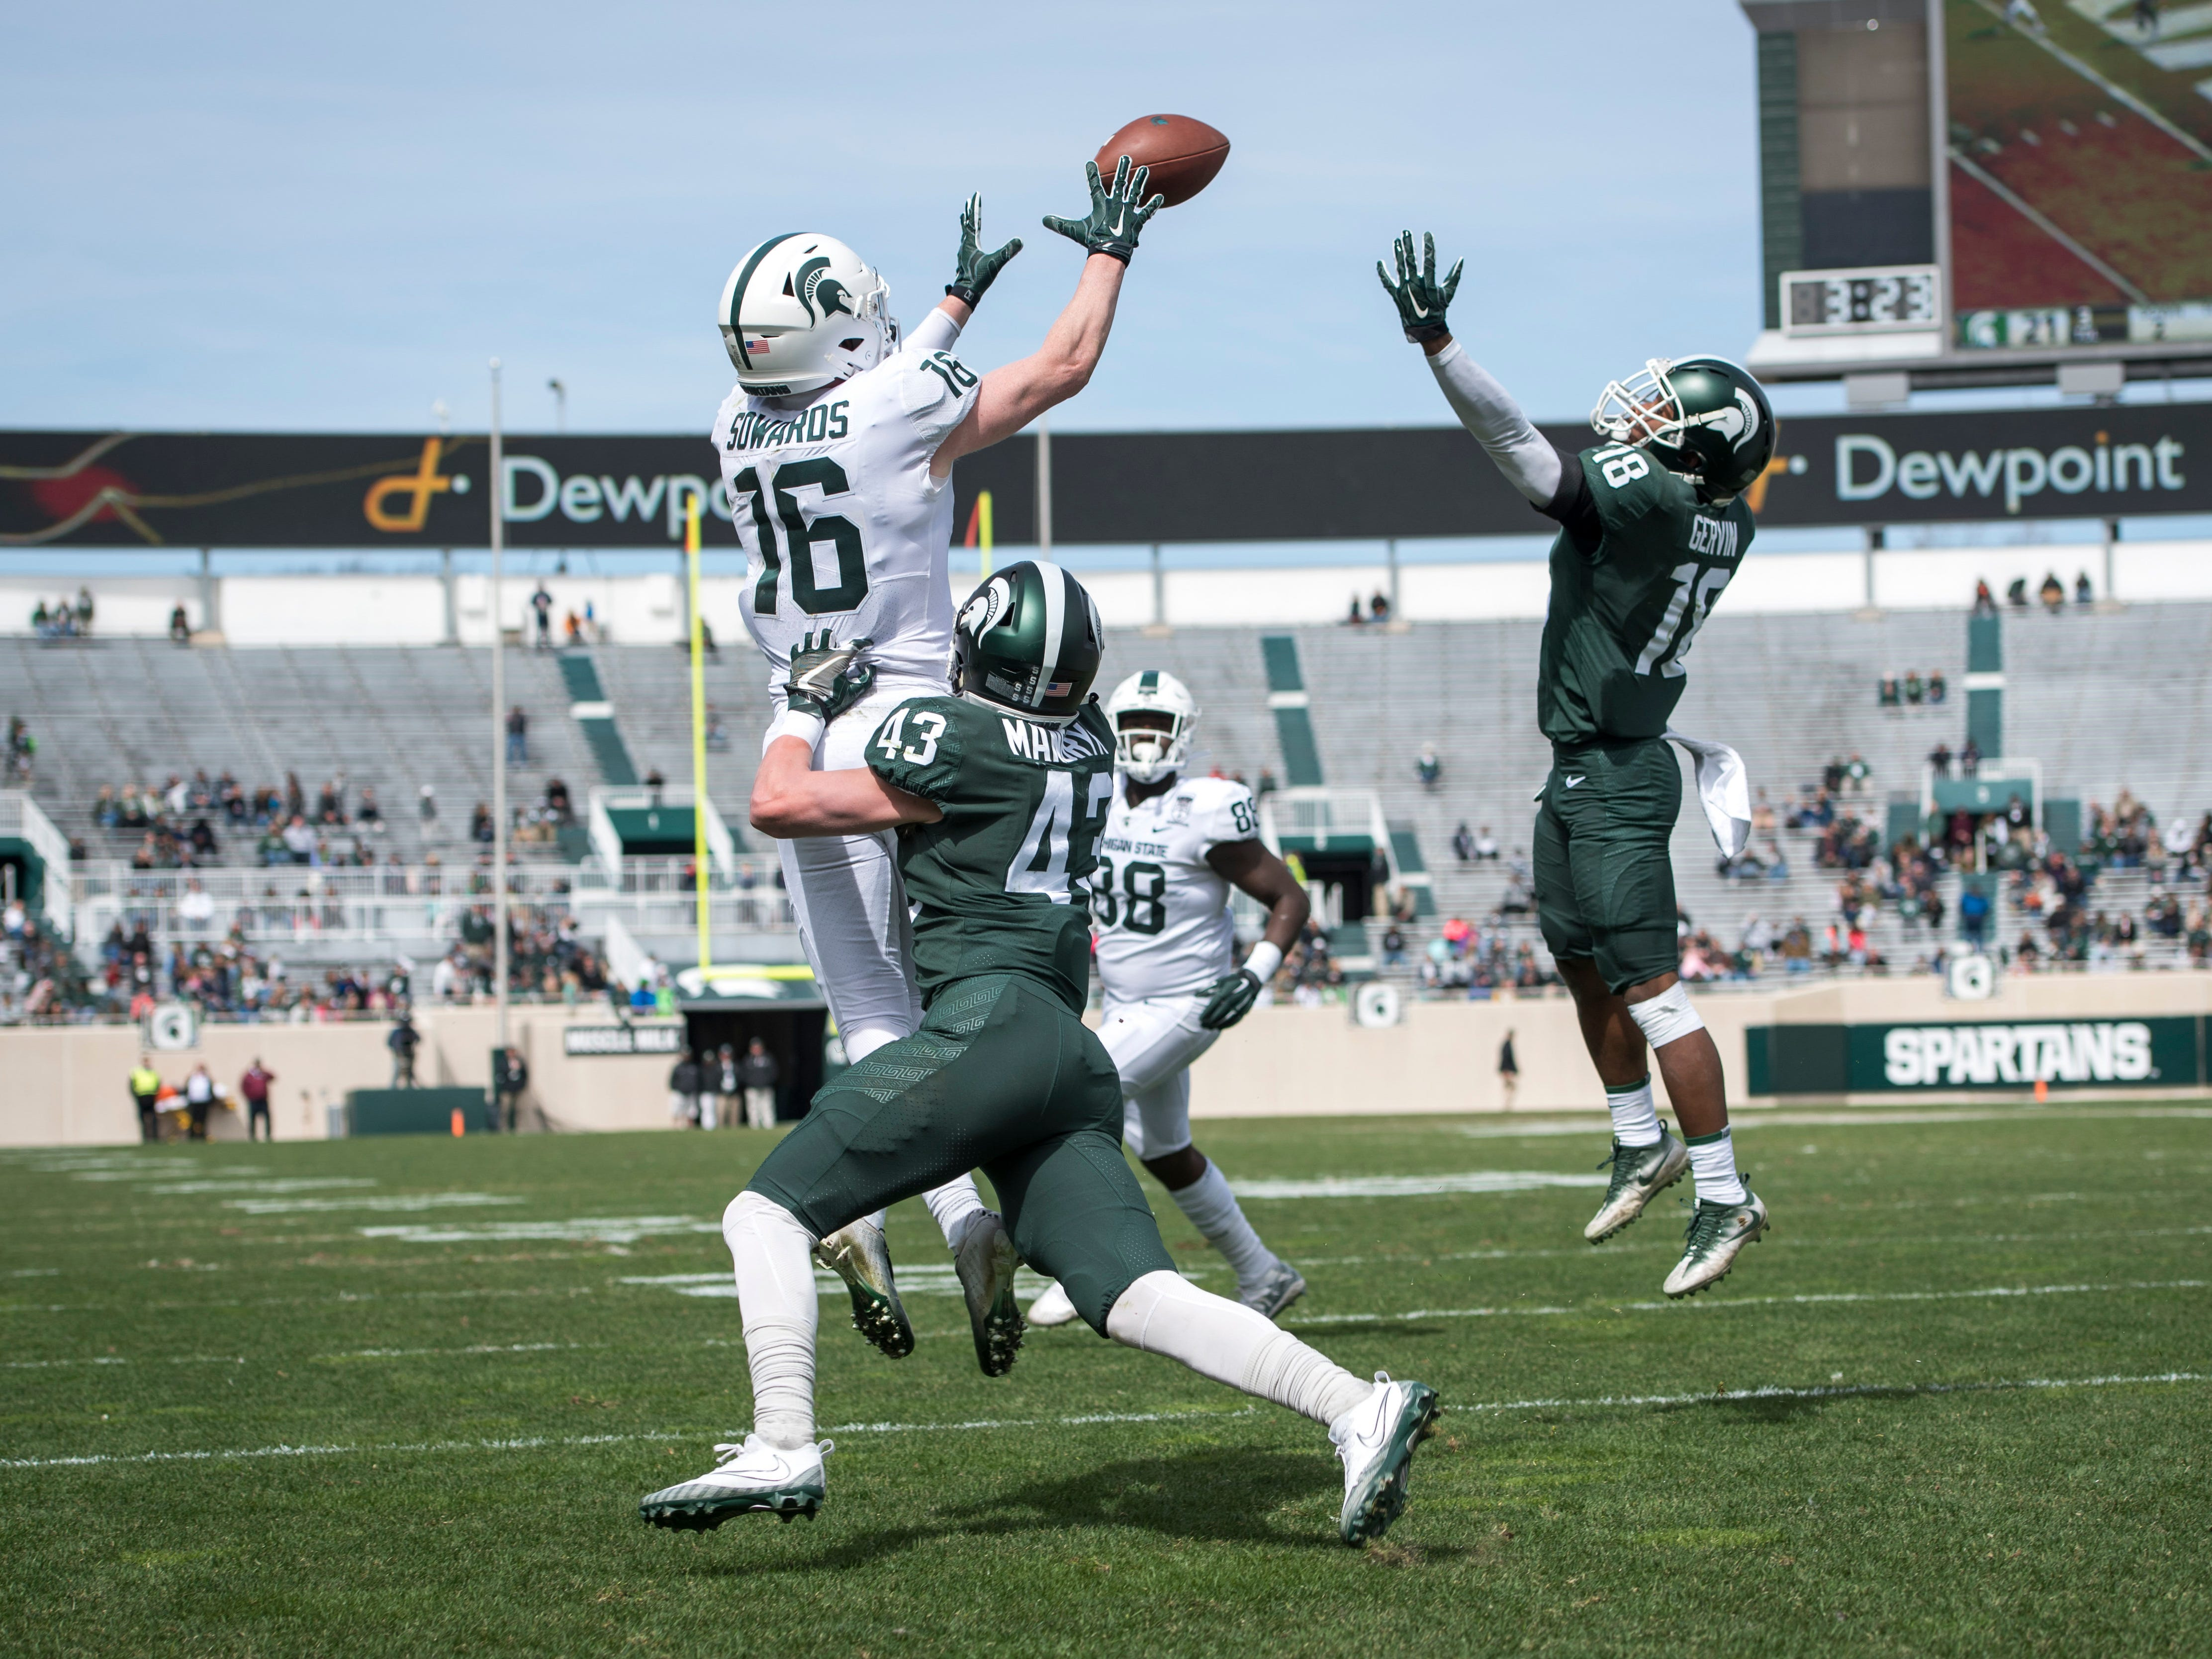 Wide receiver Brandon Sowards jumps to receive a a pass while being covered by safety Jack Mandryk.